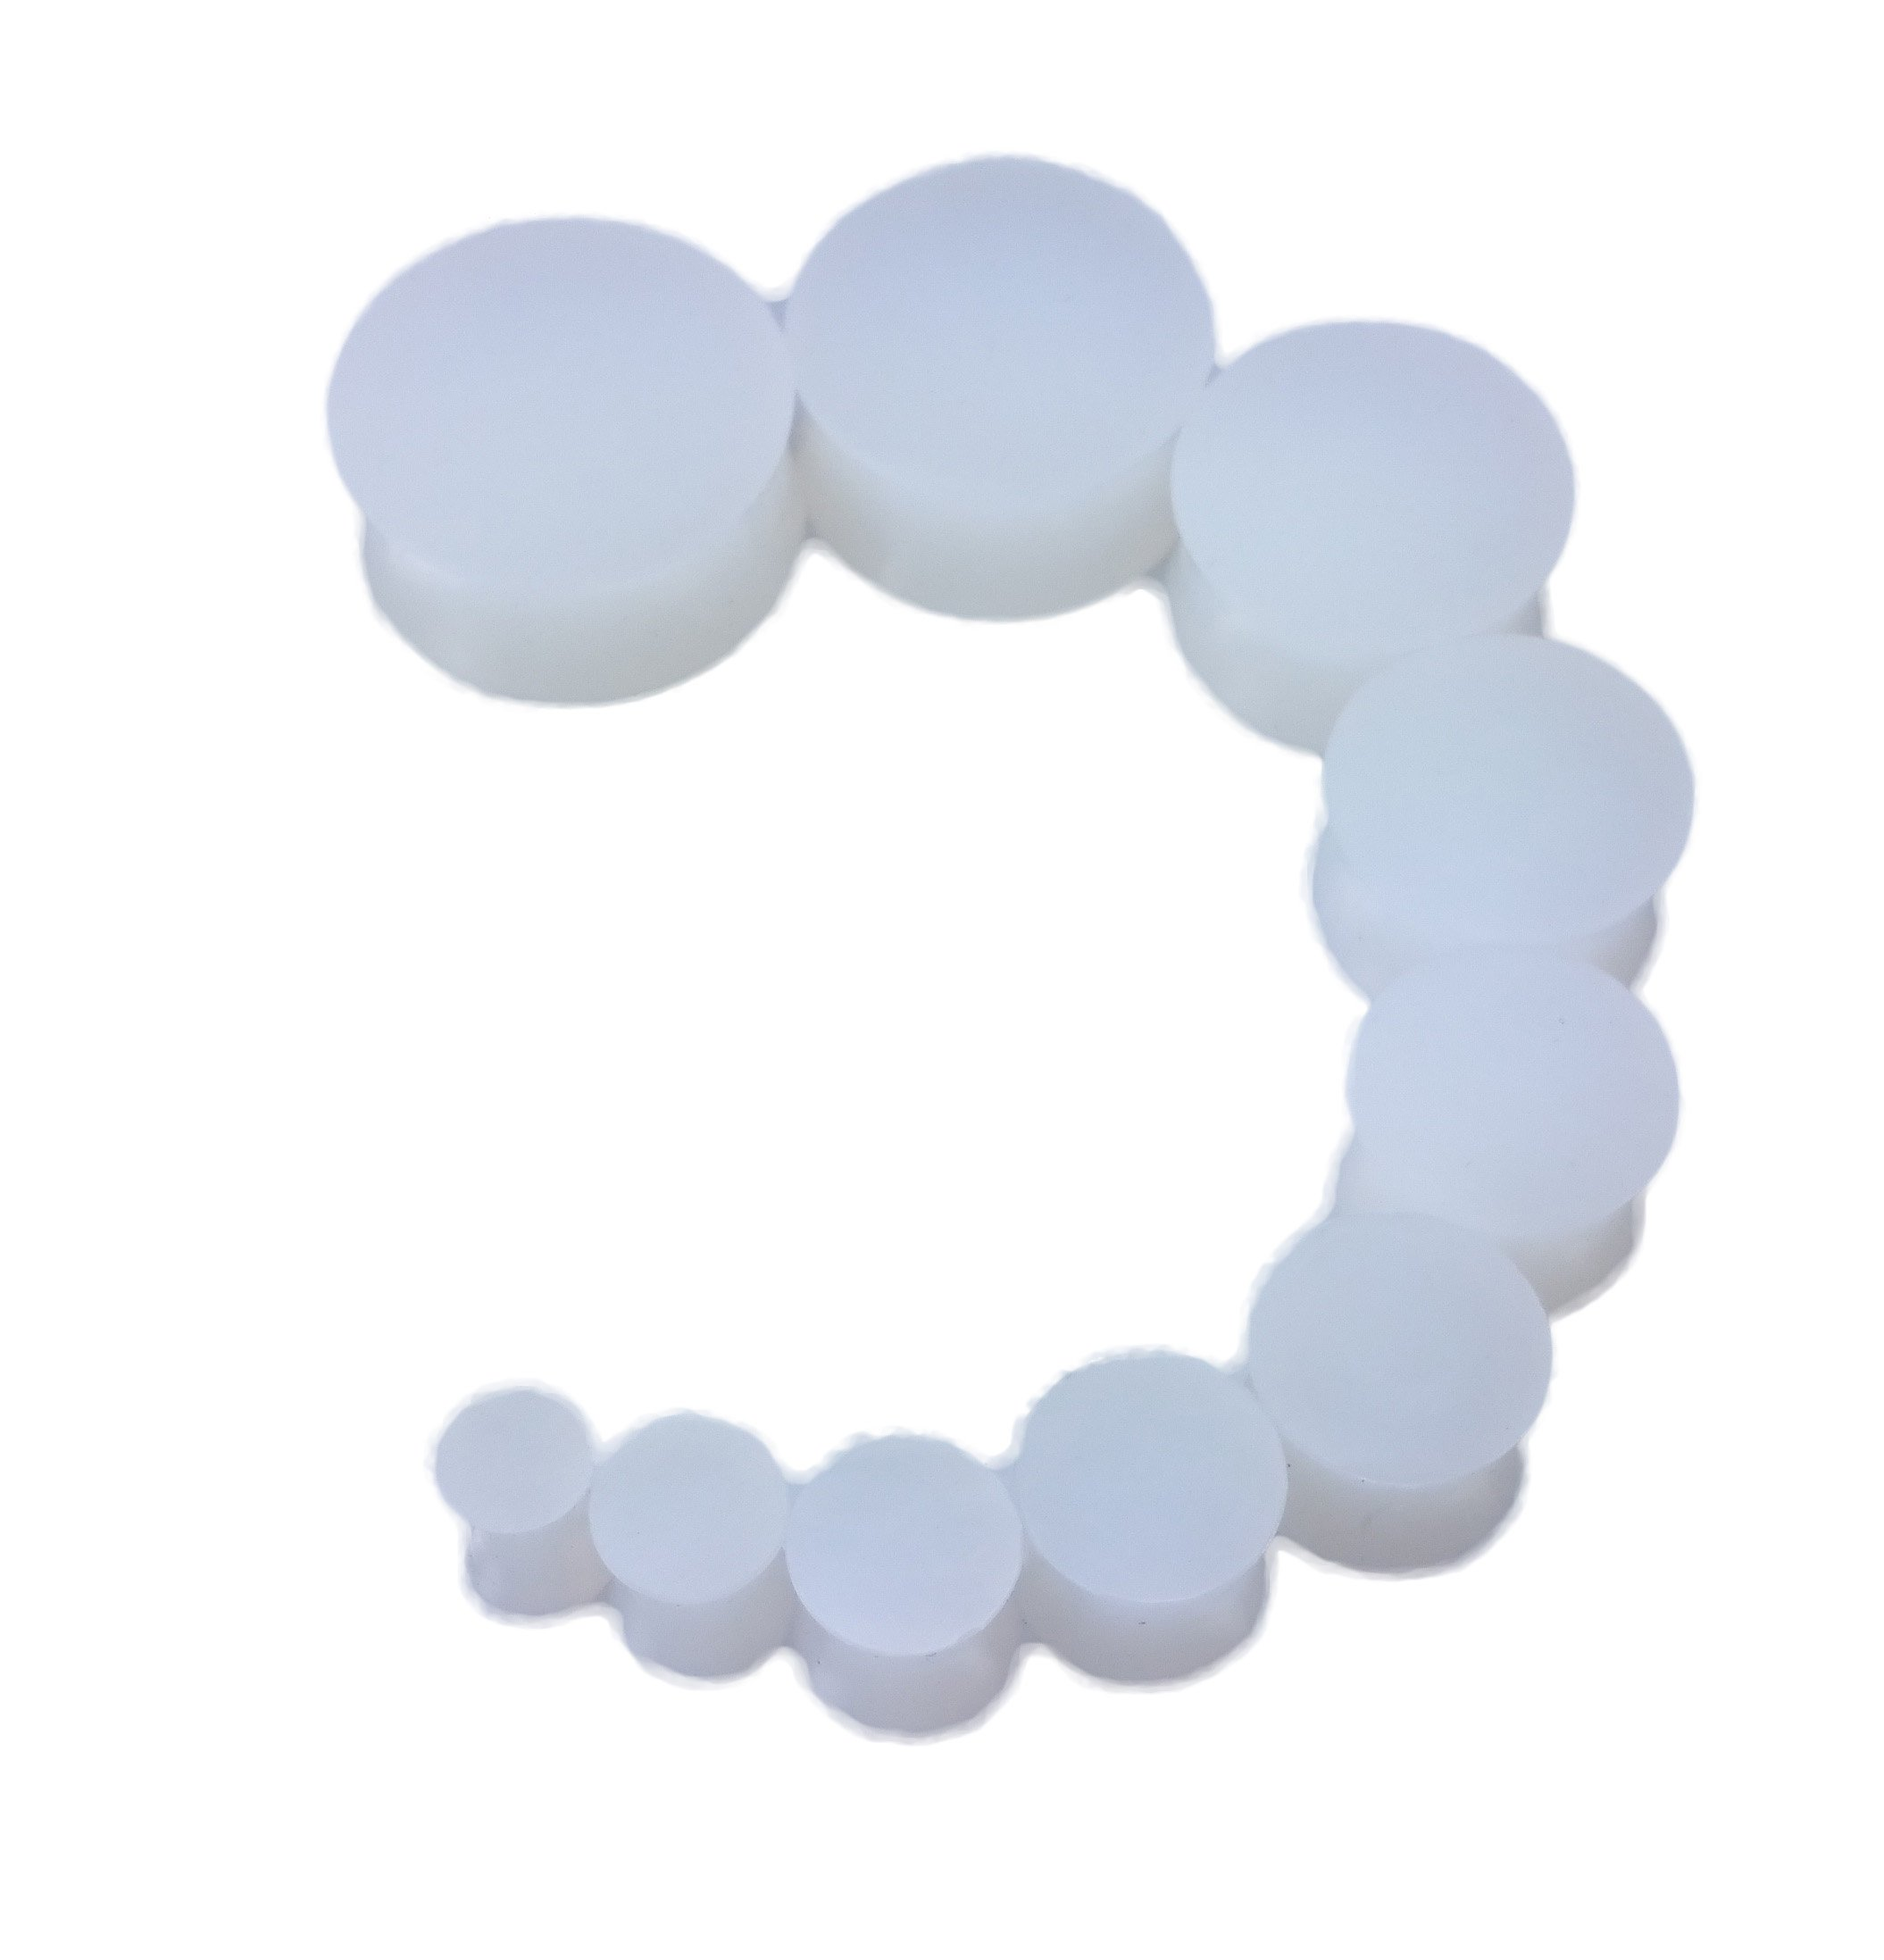 PAIR 8g-26mm Frosty Clear Solid Silicone Plugs Tunnels Gauges Double Flare (6g (4mm))